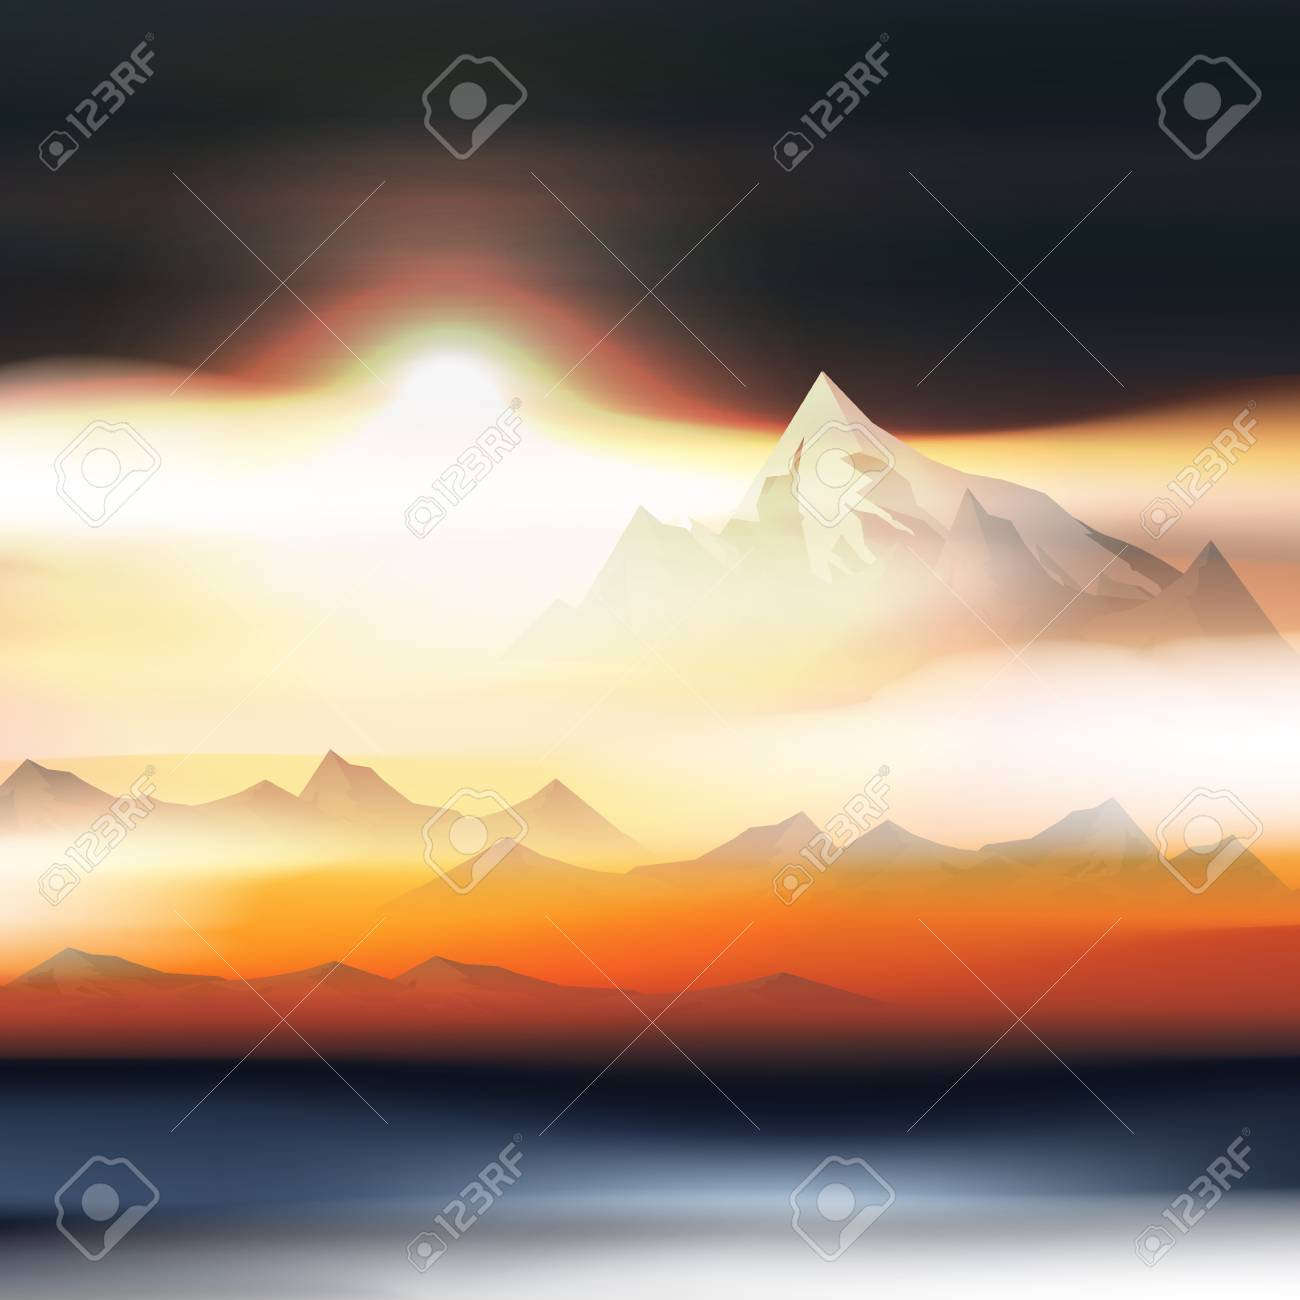 Mountains Over the Clouds Landscape at Sunset or Dawn - Vector Illustration - 105363107